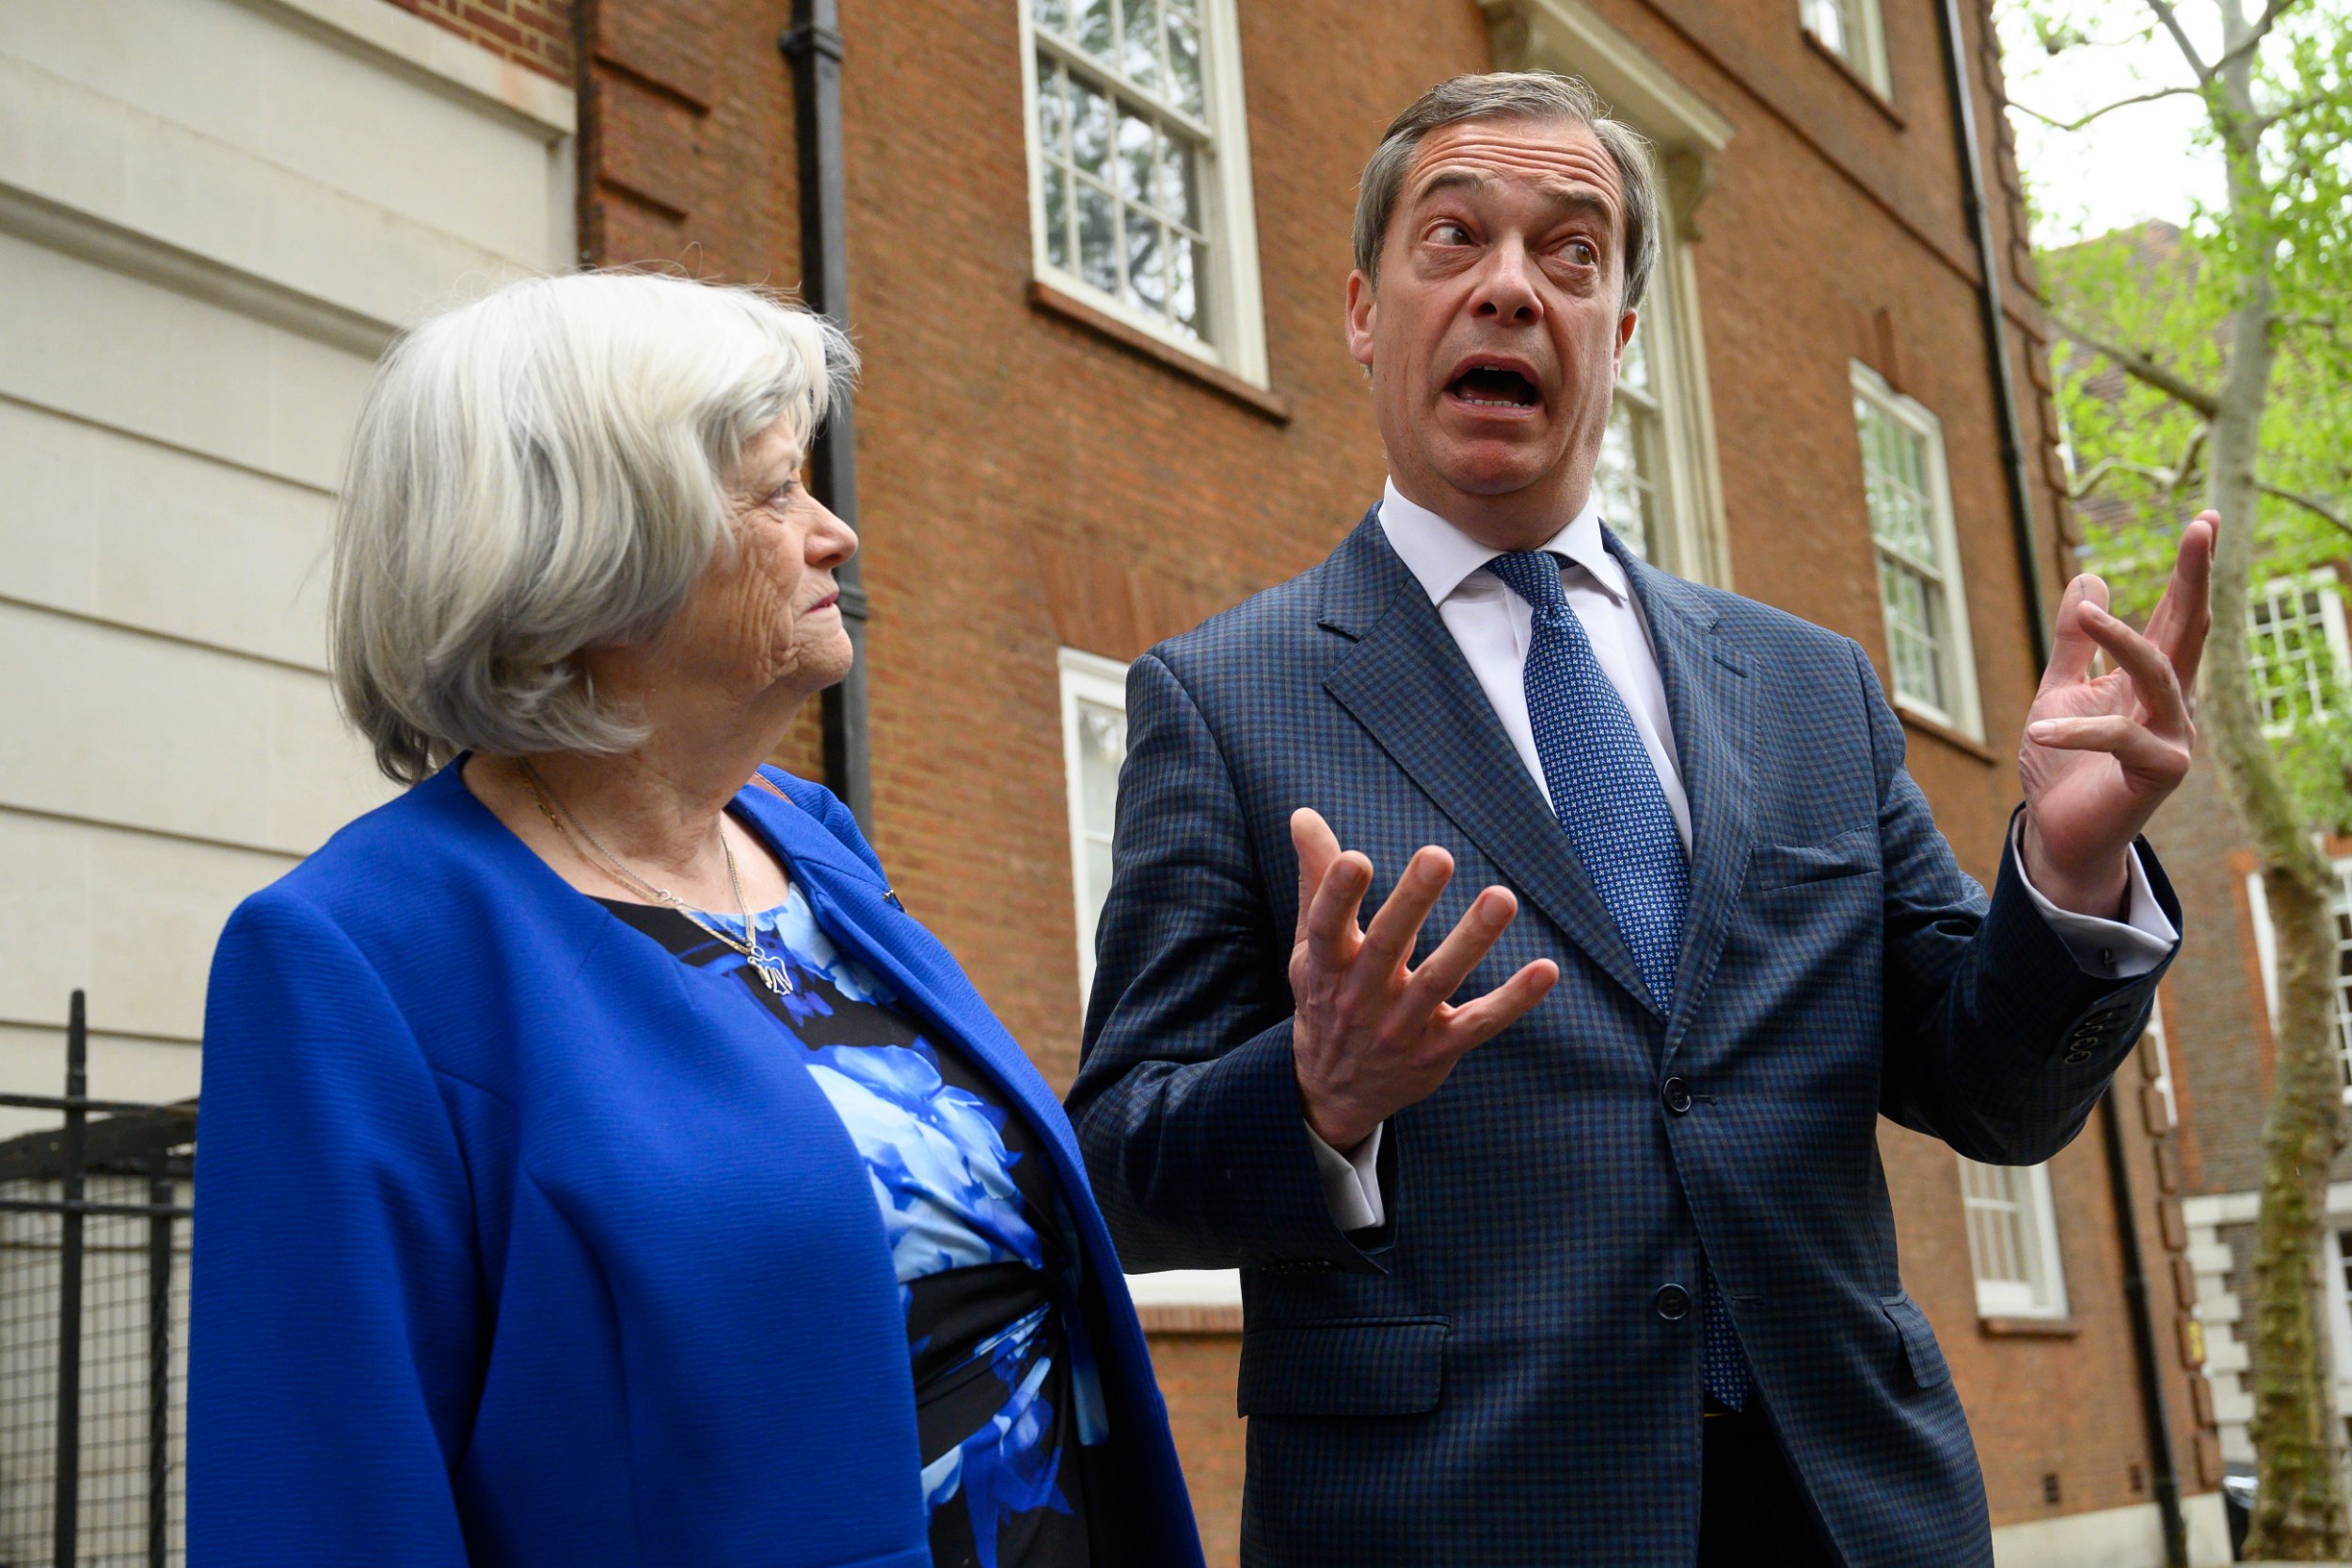 LONDON, ENGLAND - APRIL 24: Ann Widdecombe (L) and Nigel Farage pose at St John's, Smith Square on April 24, 2019 in London, England. Ann Widdecombe has been a member of the Conservative Party for 43 years, in that time she has been MP for Maidstone and under the leadership of William Hague she served as Shadow Health Secretary and Shadow Home Secretary. In 2010 she appeared on Strictly Come Dancing. Today she announced her return to politics standing in the forthcoming European Elections for the newly-formed Brexit Party. (Photo by Leon Neal/Getty Images)